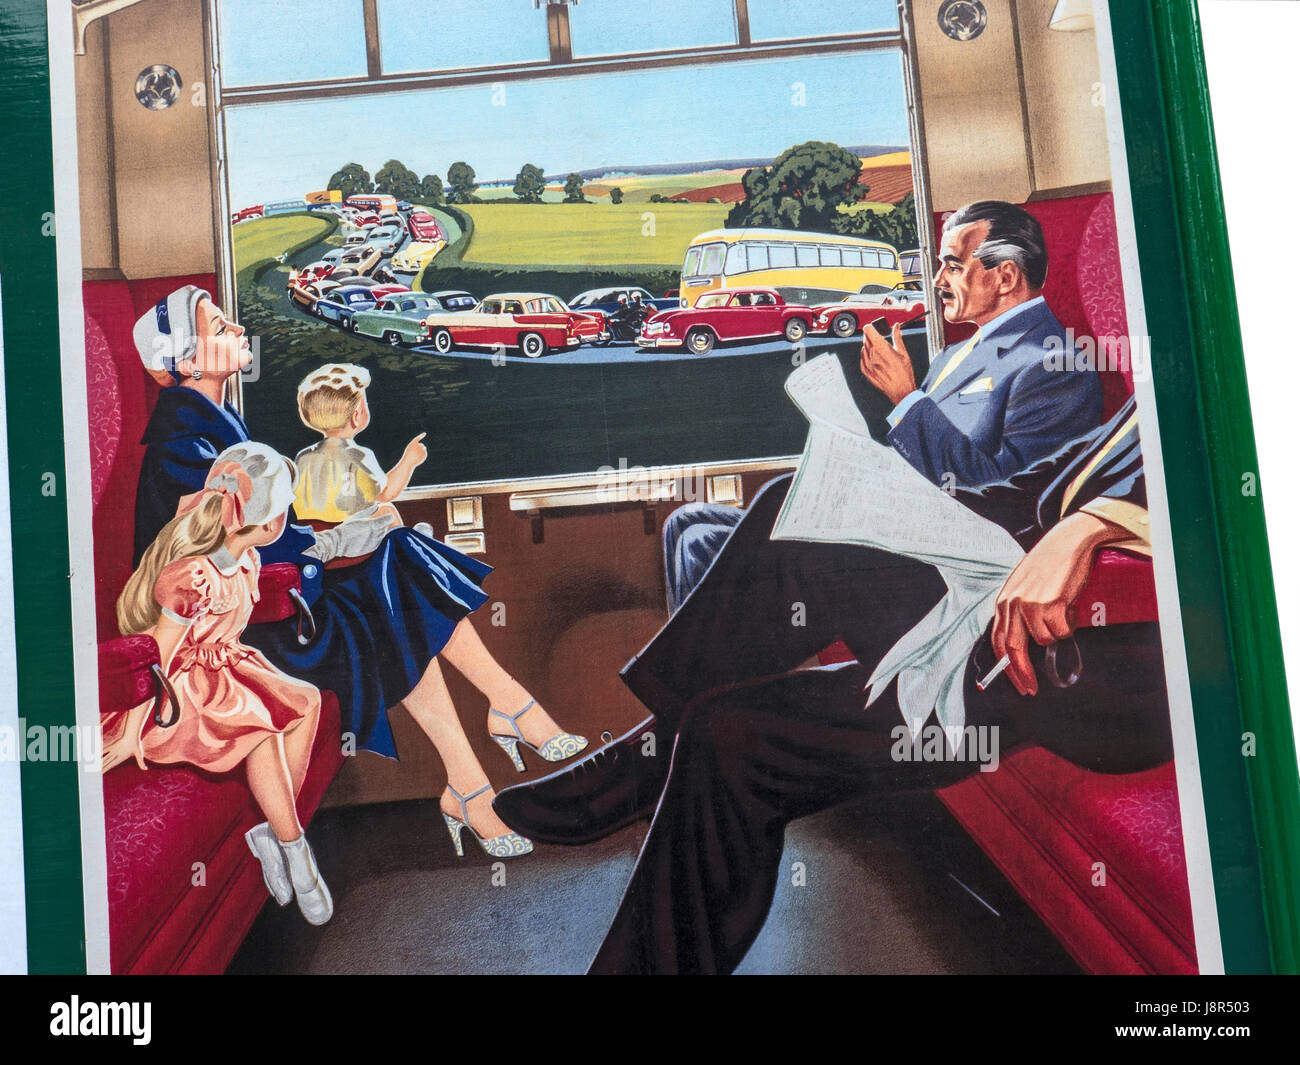 Detail close up on Vintage Retro années 50 British Railways affiche montrant les passagers des trains détendue Photo Stock